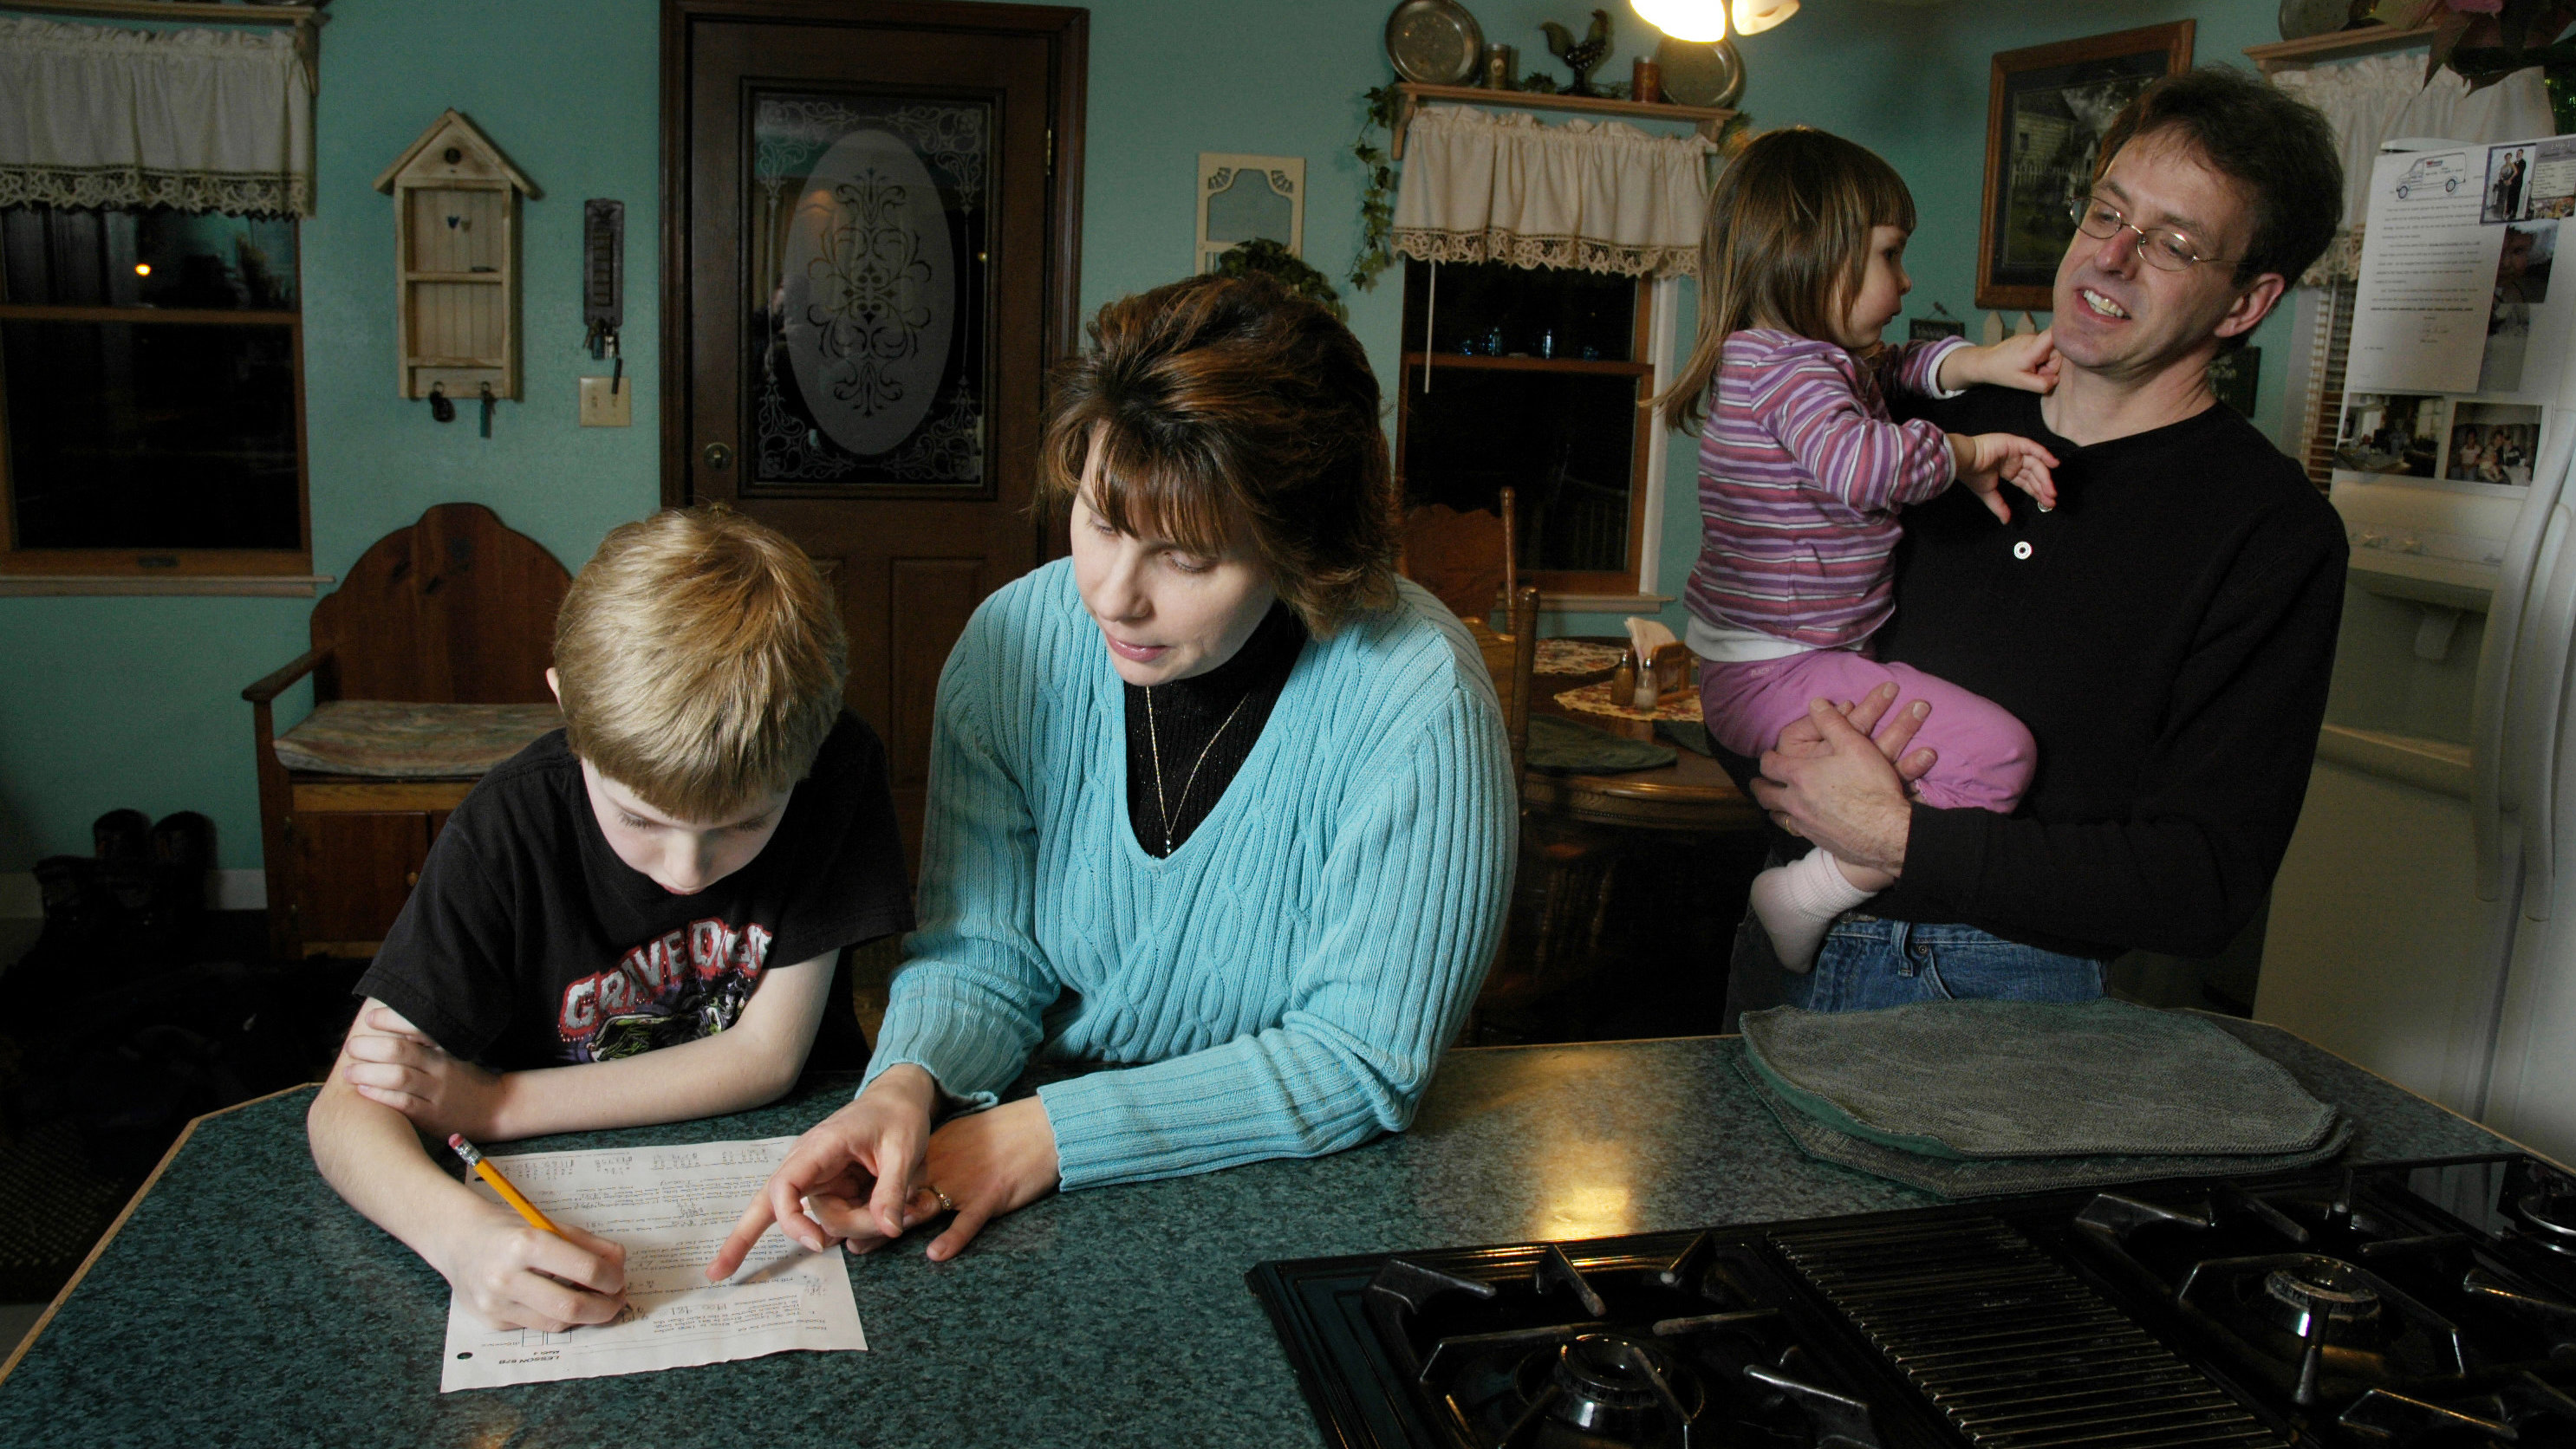 Grace Case, second left, helps her son Adam, left, with his math homework as her husband, Dan, right, and daughter Emily look on at their home in Fulton, N.Y., Thursday, Jan. 29, 2009. The Cases, who accumulated over $40,000 in credit card debt, now live a frugal lifestyle in an effort to pay down the debt.